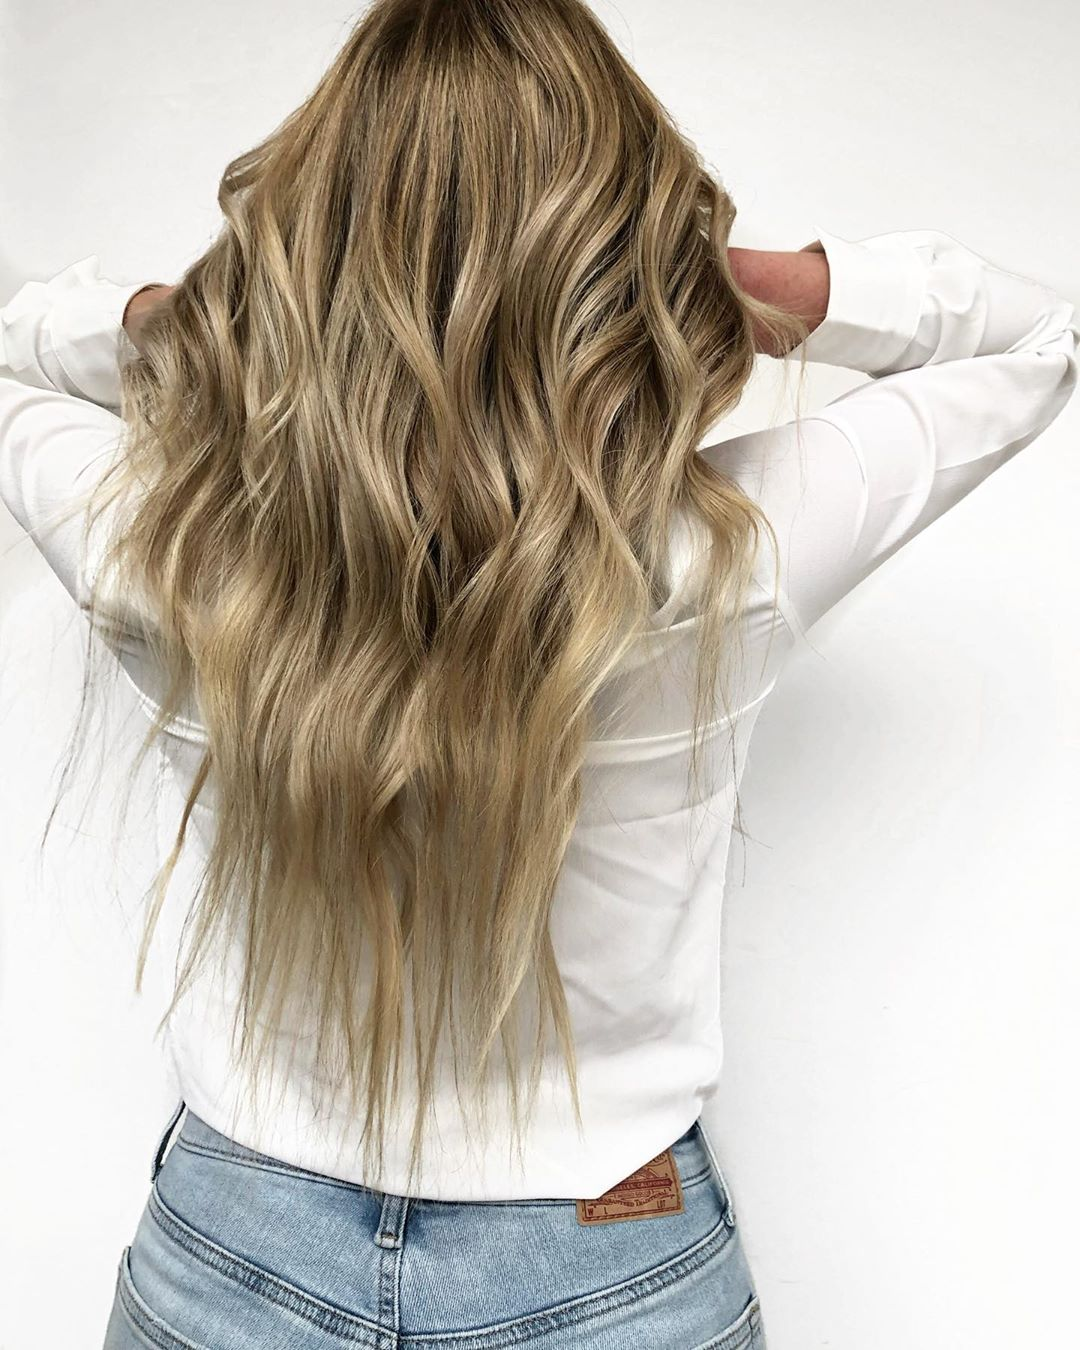 Beachy waves and lowlights for blonde hair